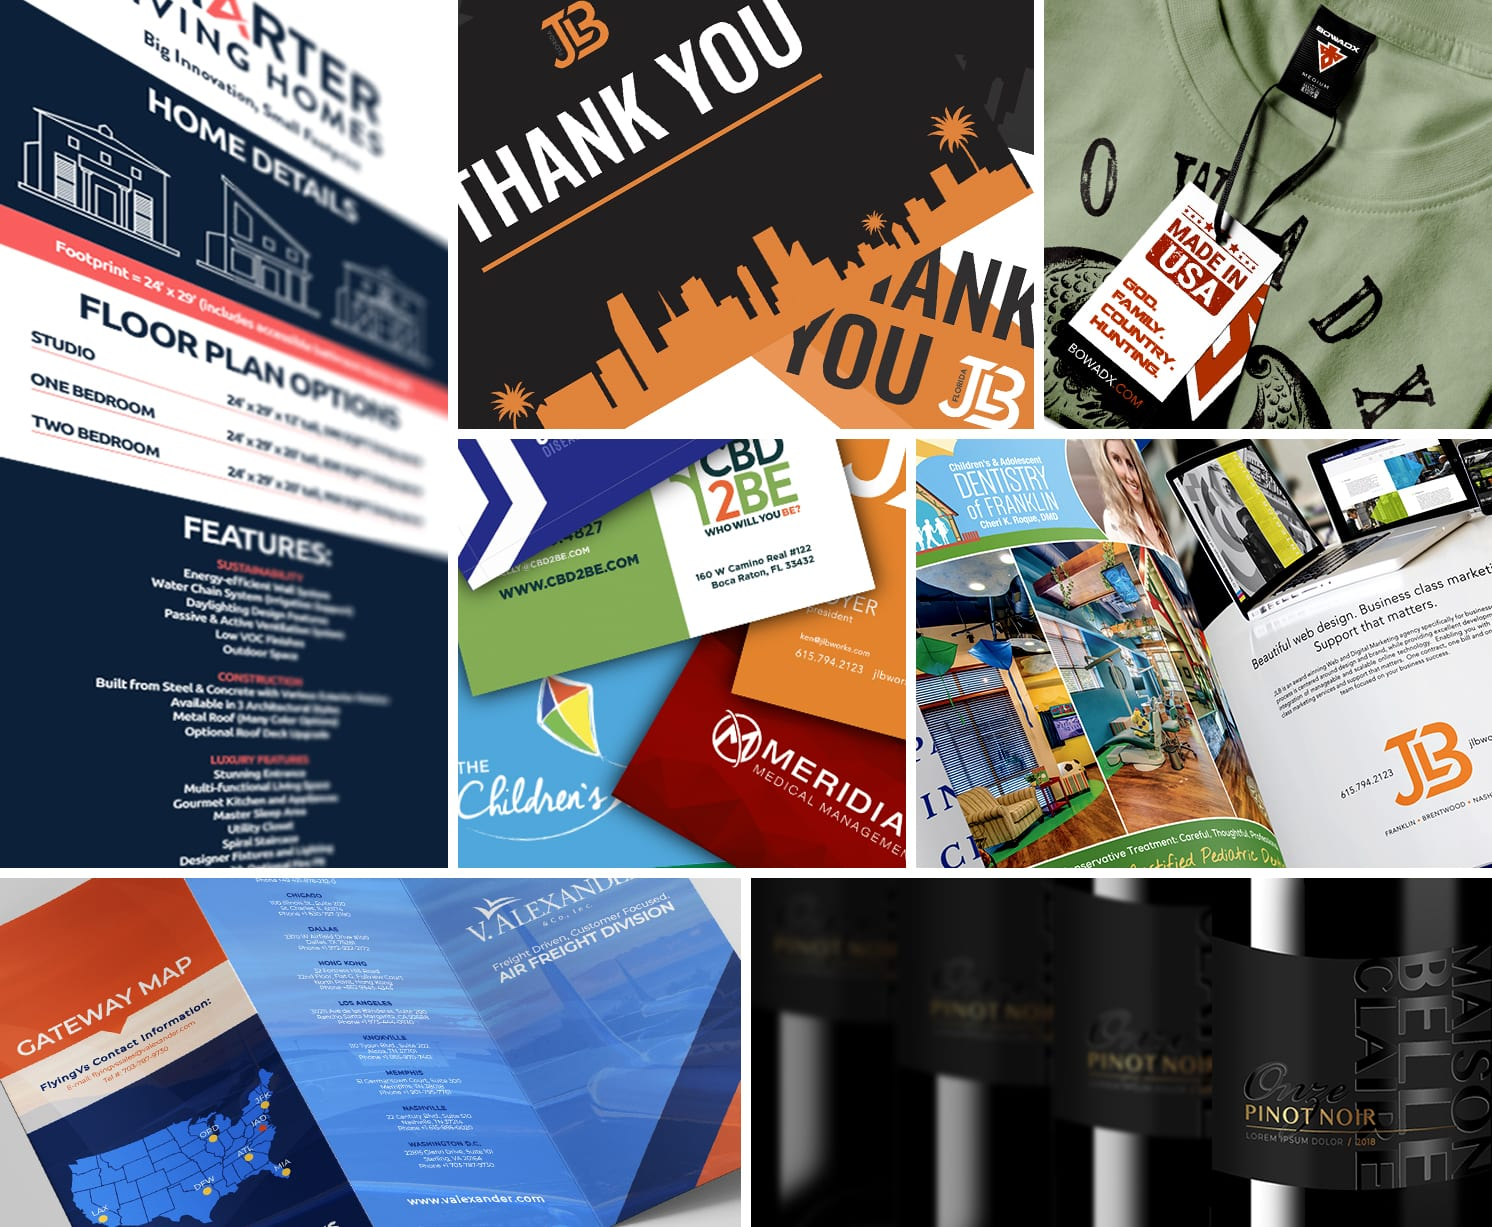 Nashville Graphic design collage for JLB which is the Best Nashville Web Design company, serving Brentwood and Franklin TN with Web Design, SEO, Web Support and Inbound Marketing services all in-house.